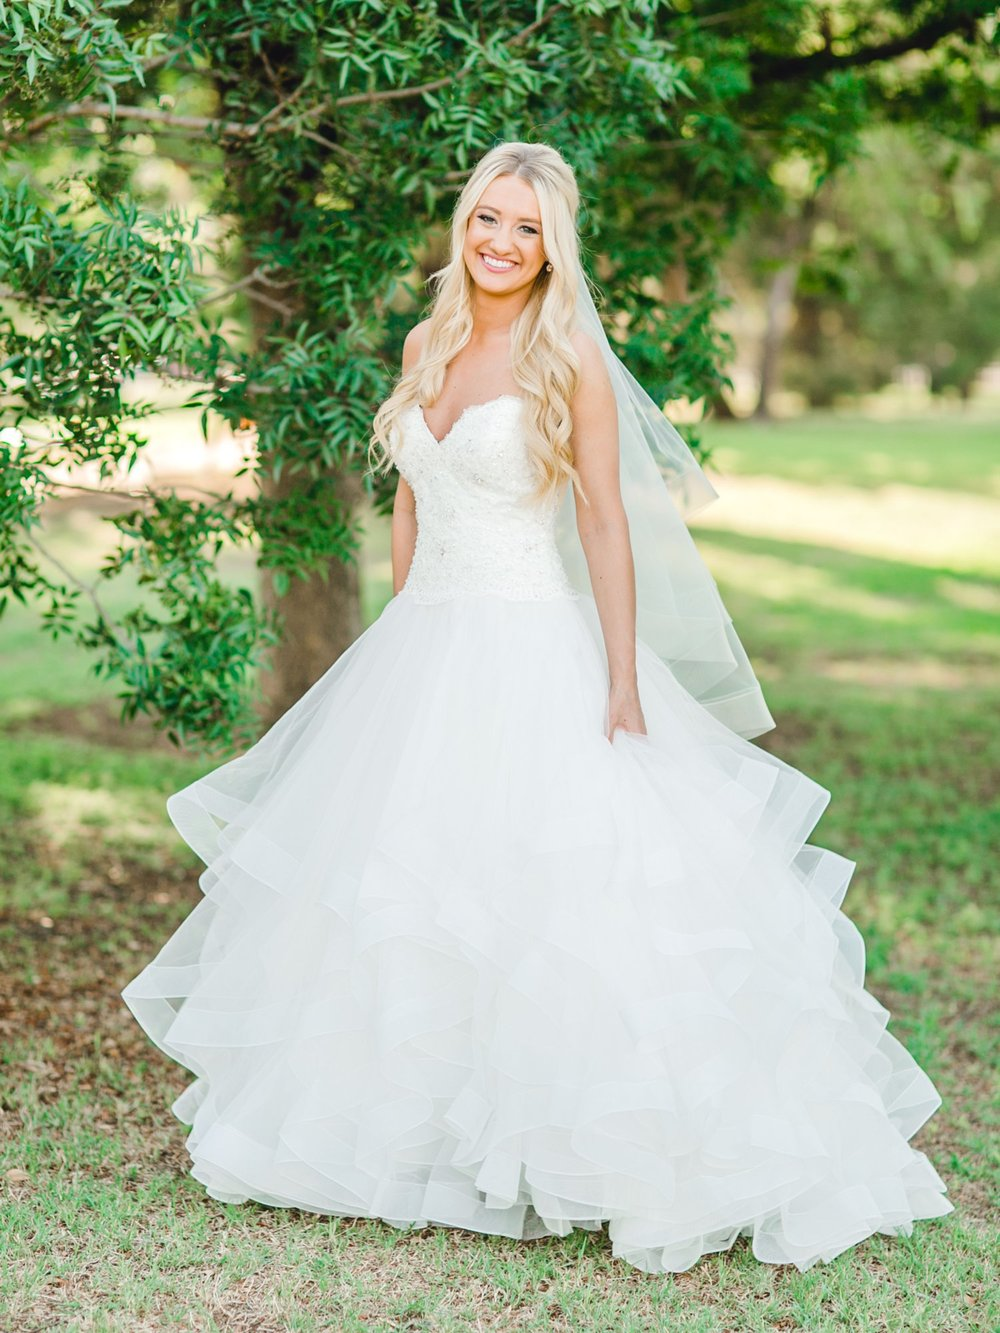 MADI_WRIGHT_BRIDALS_ALLEEJ_LUBBOCK_PHOTOGRAPHER0019.jpg